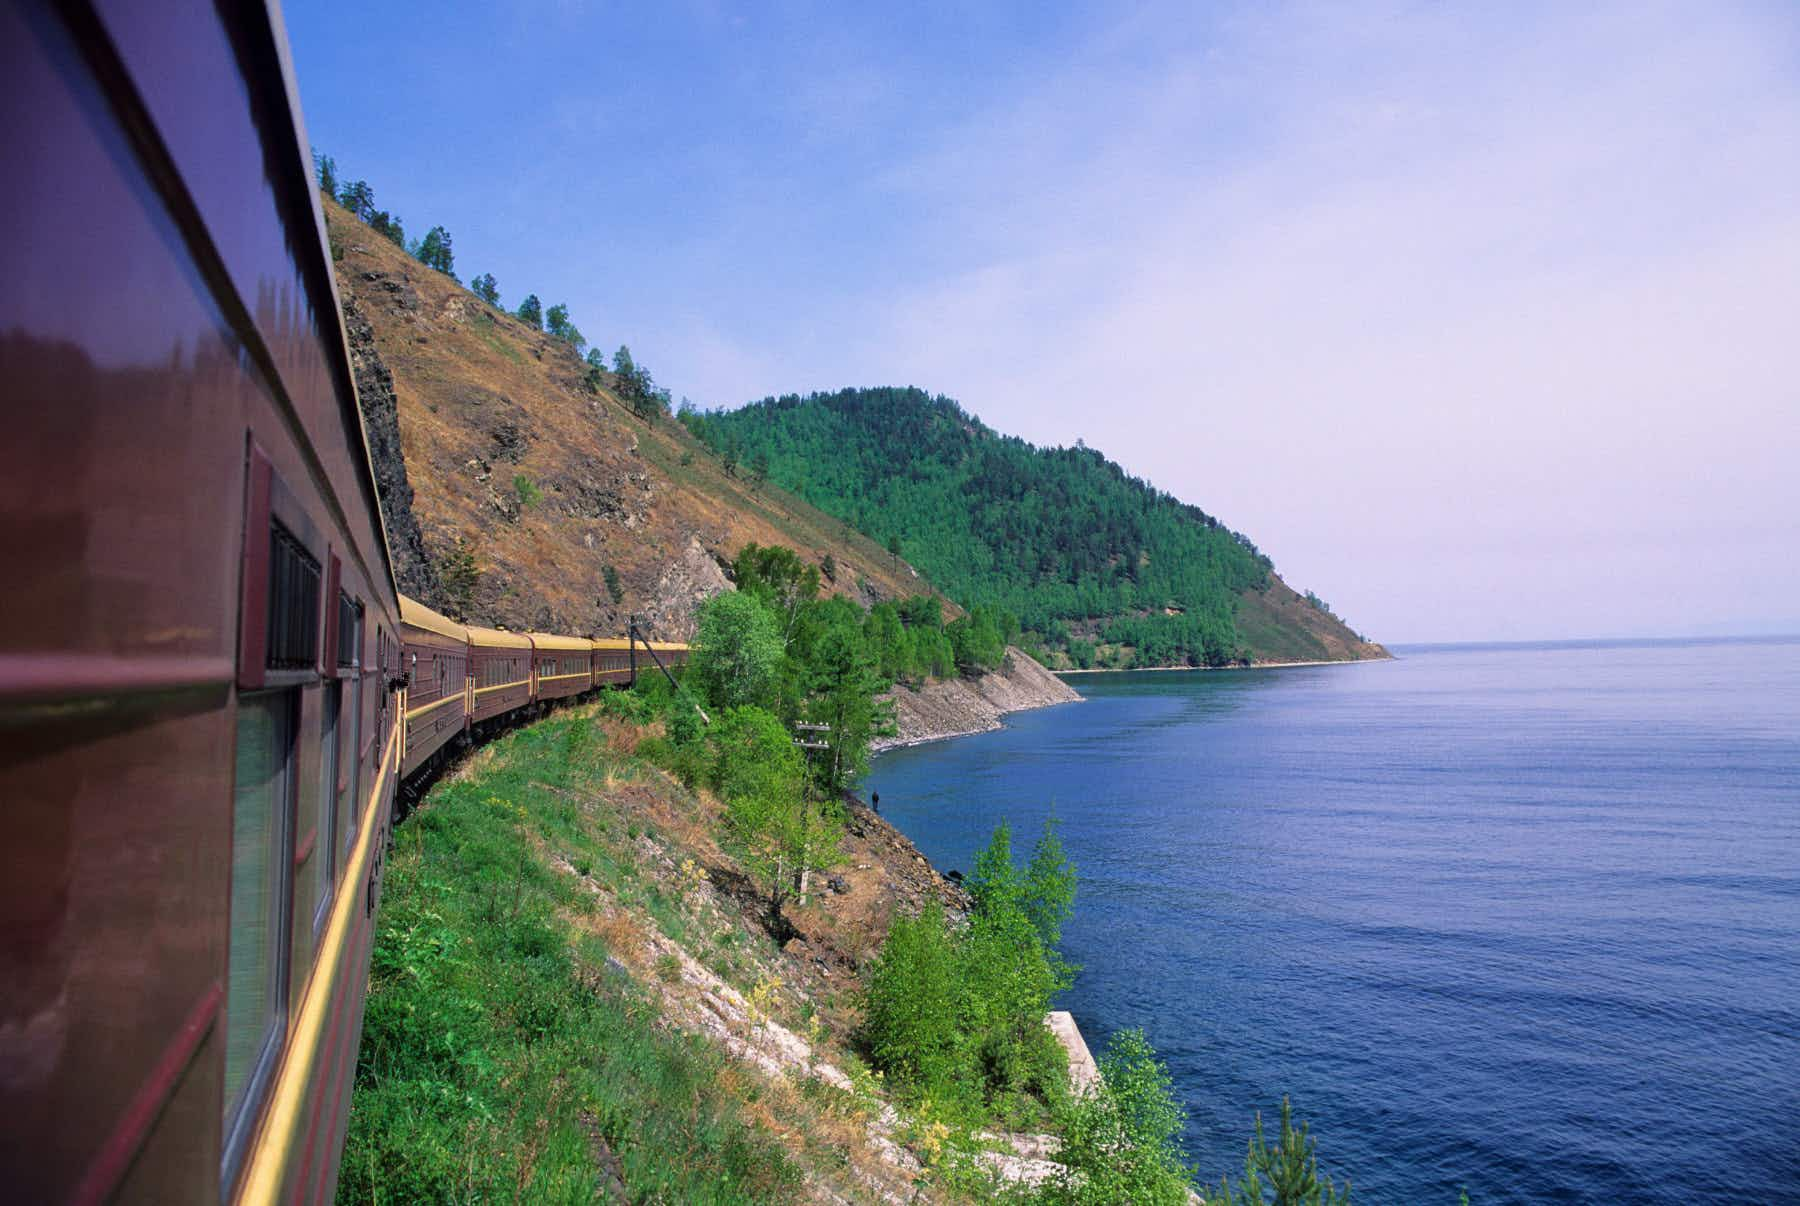 Russia wants to bring the Trans-Siberian Railway to Japan